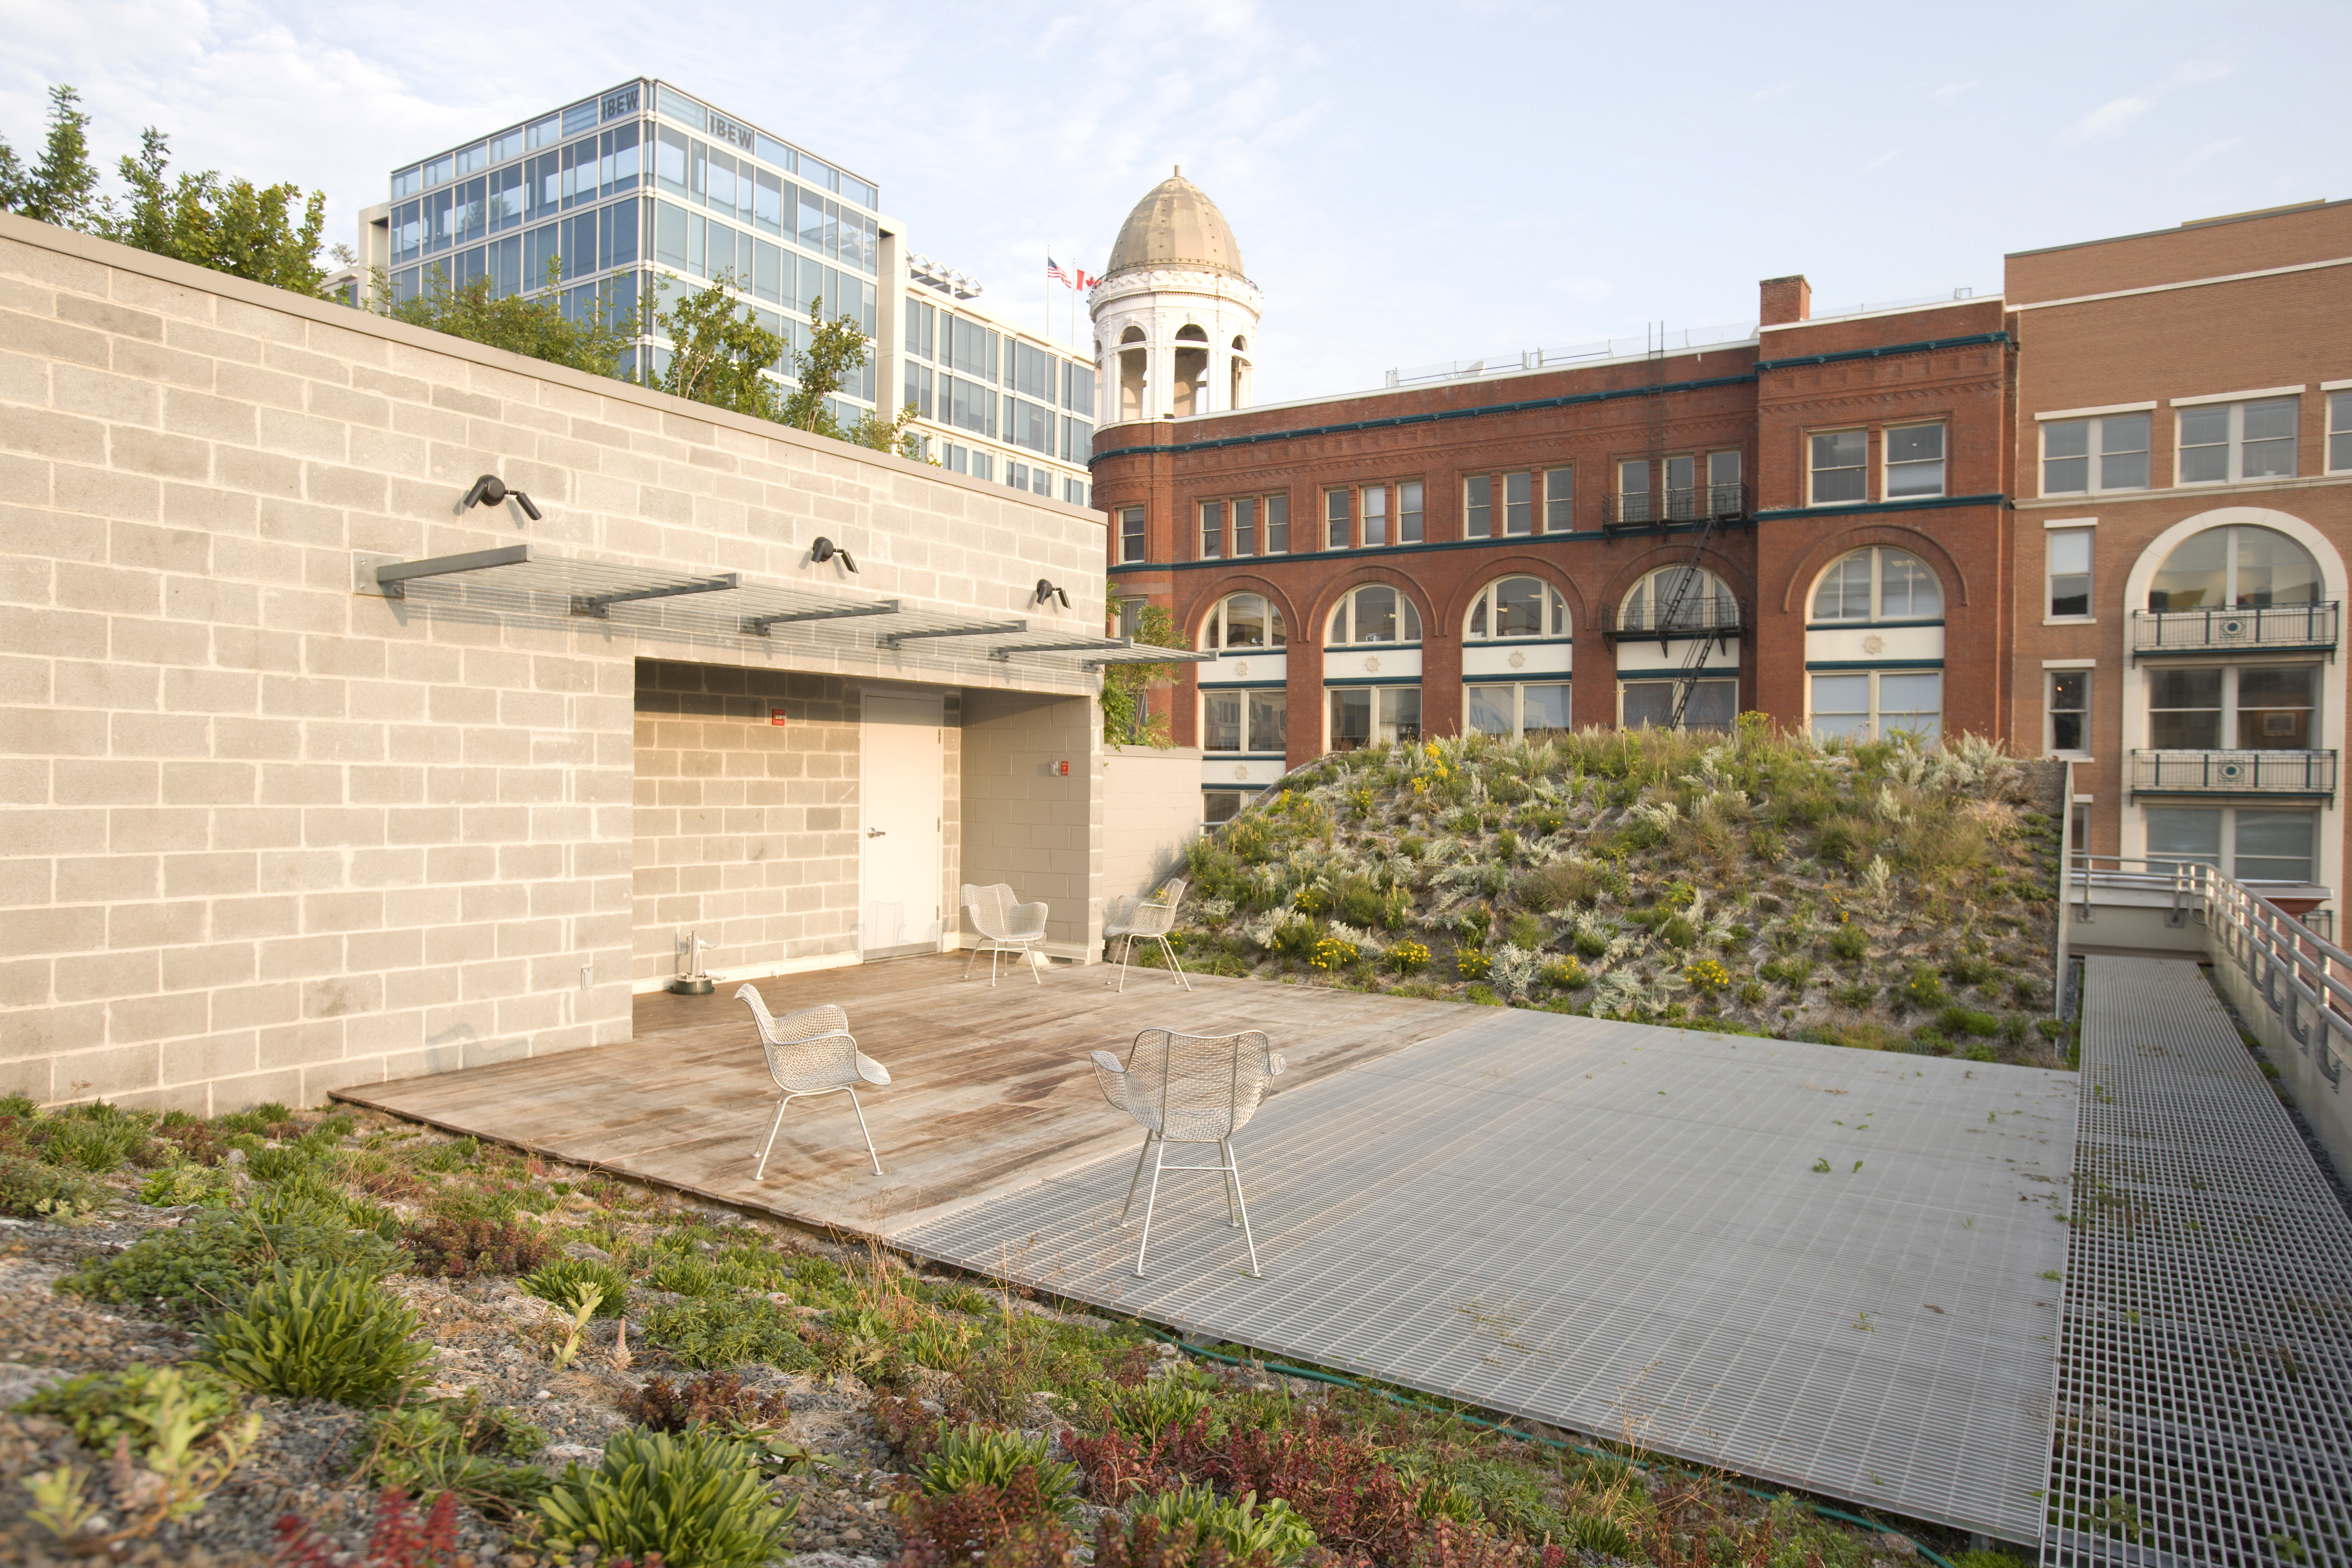 American society of landscape architects headquarters for Institute of landscape architects